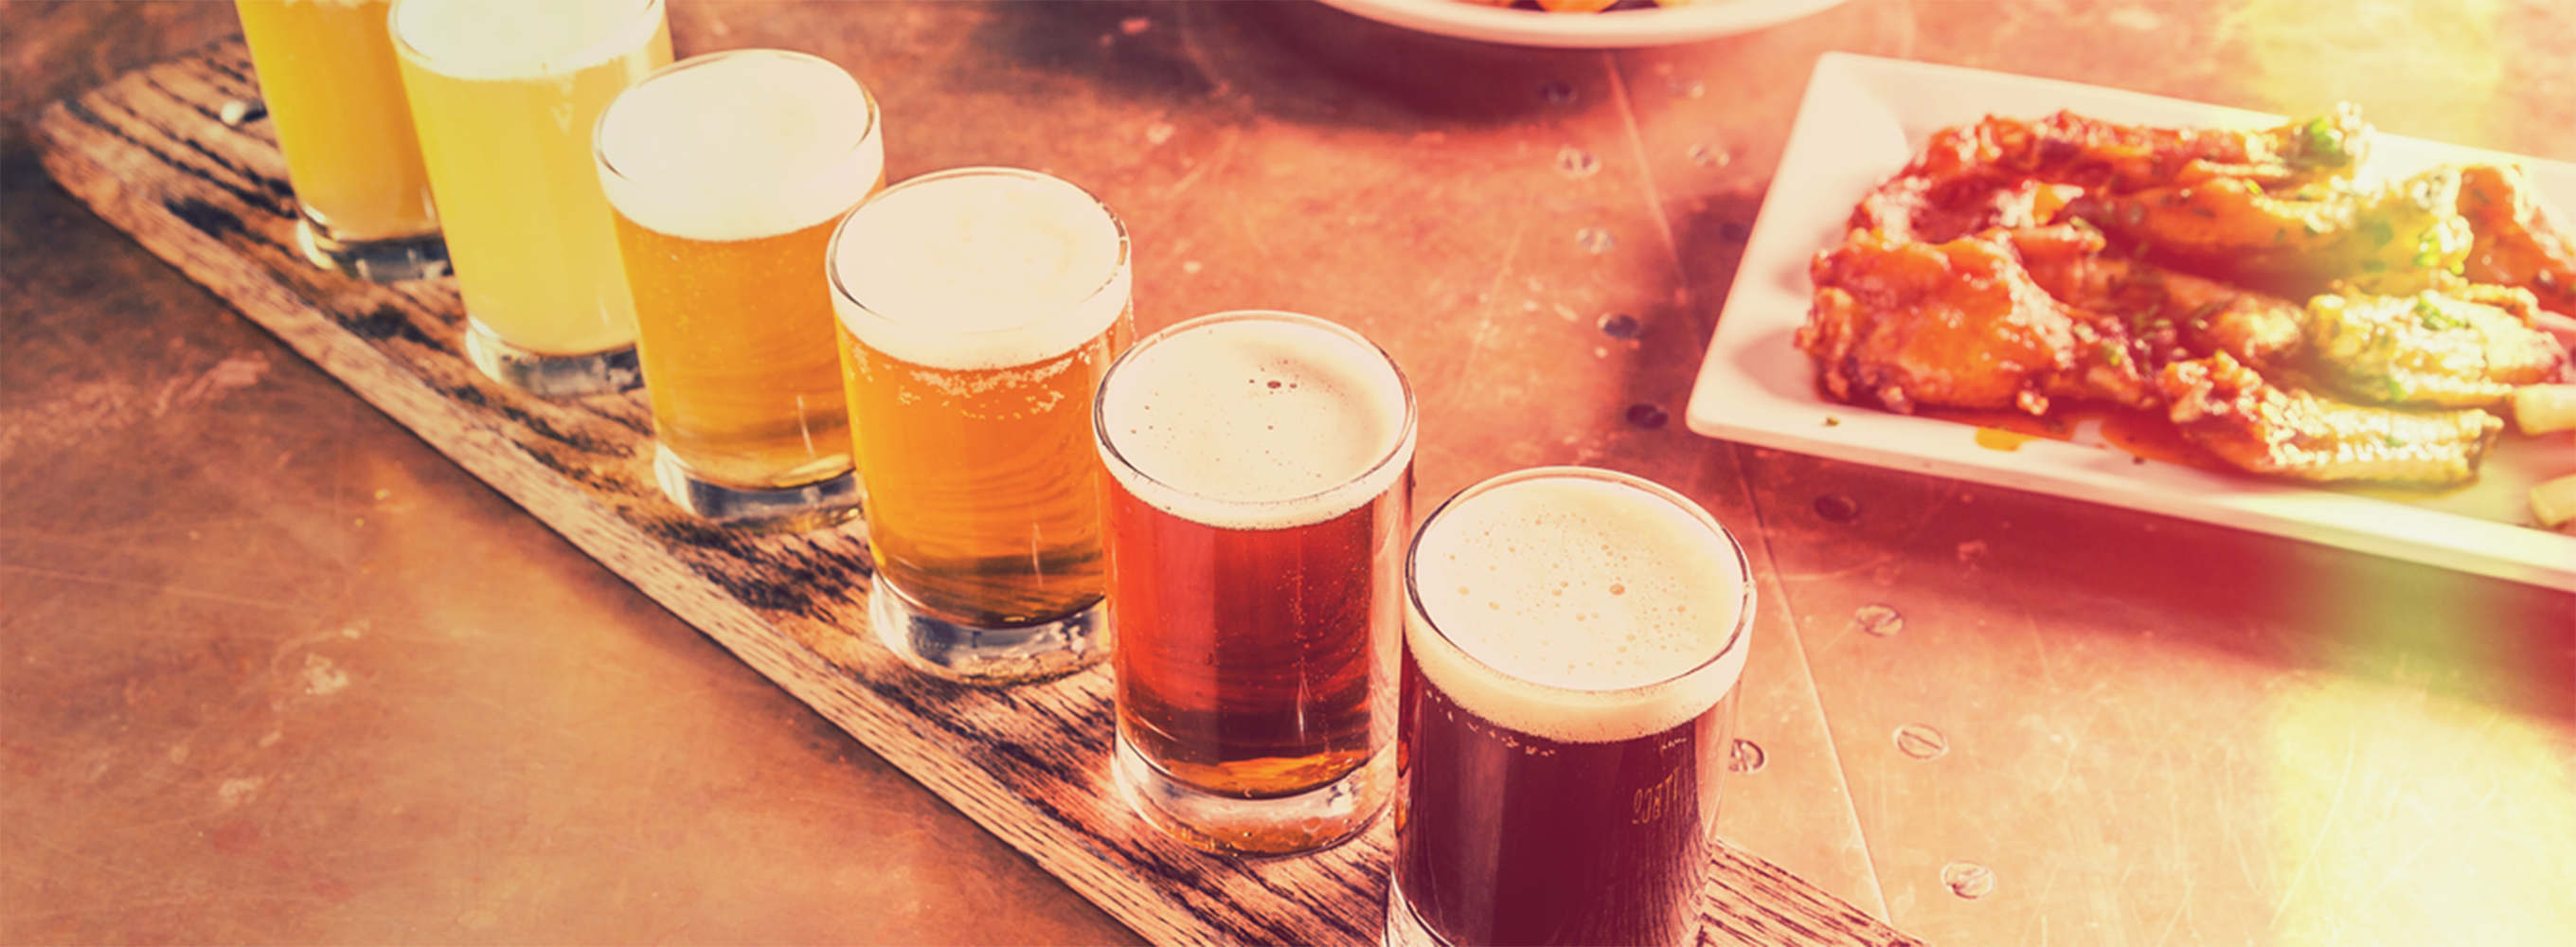 A flight of beers